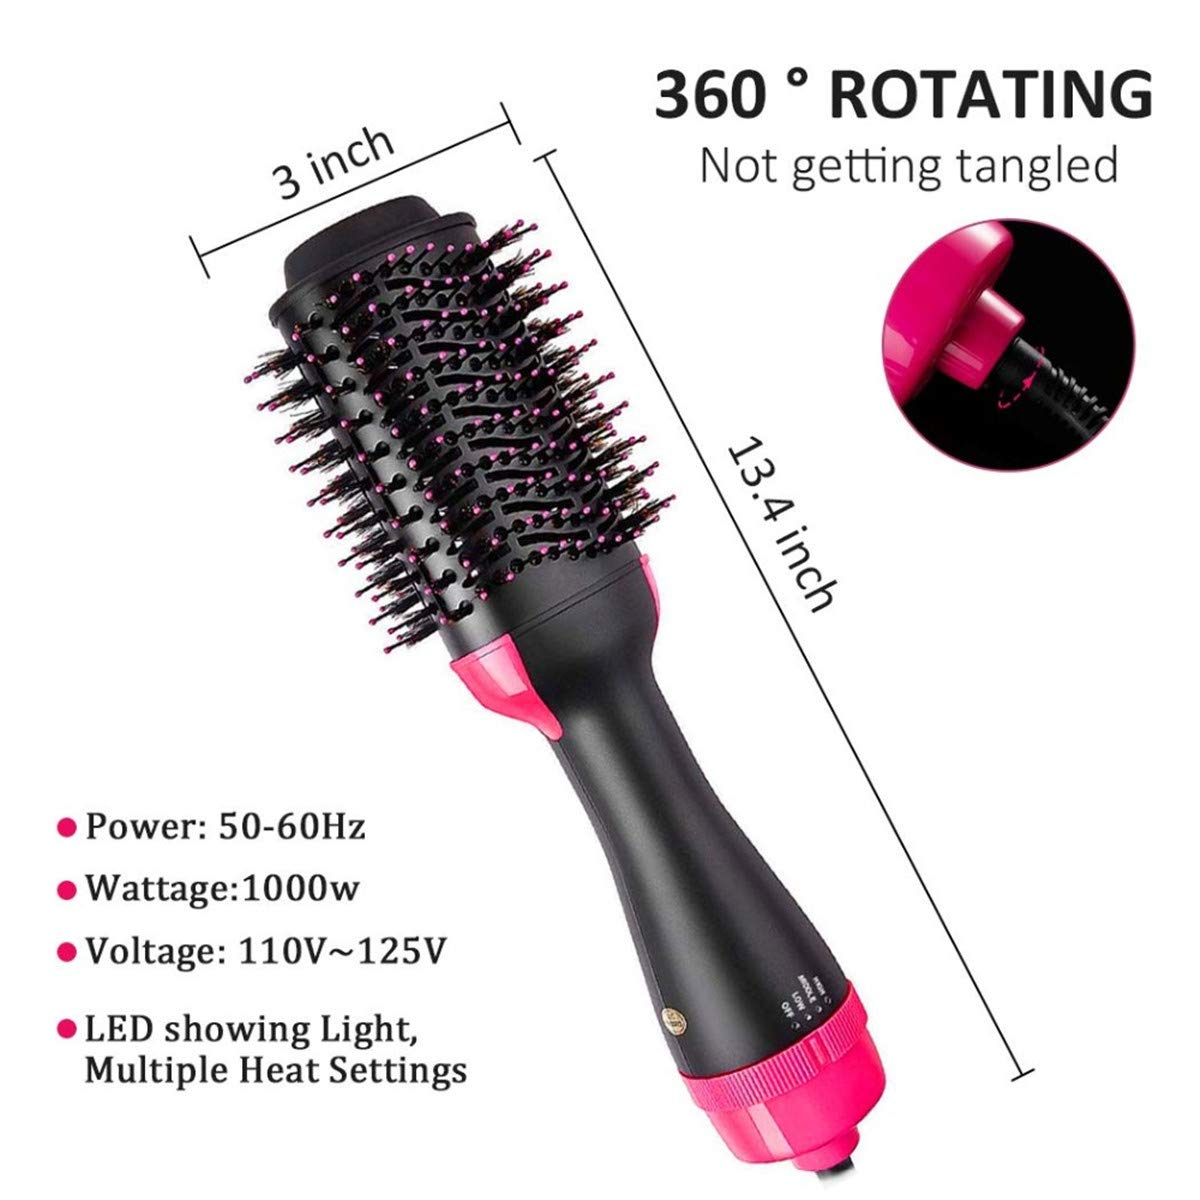 Taixinpower Hot Air Brush, One Step Hair Dryer & Volumizer Hair Straightener Curler 3-IN-1 Negative Ions for All Hair Type, Get Salon Blowouts